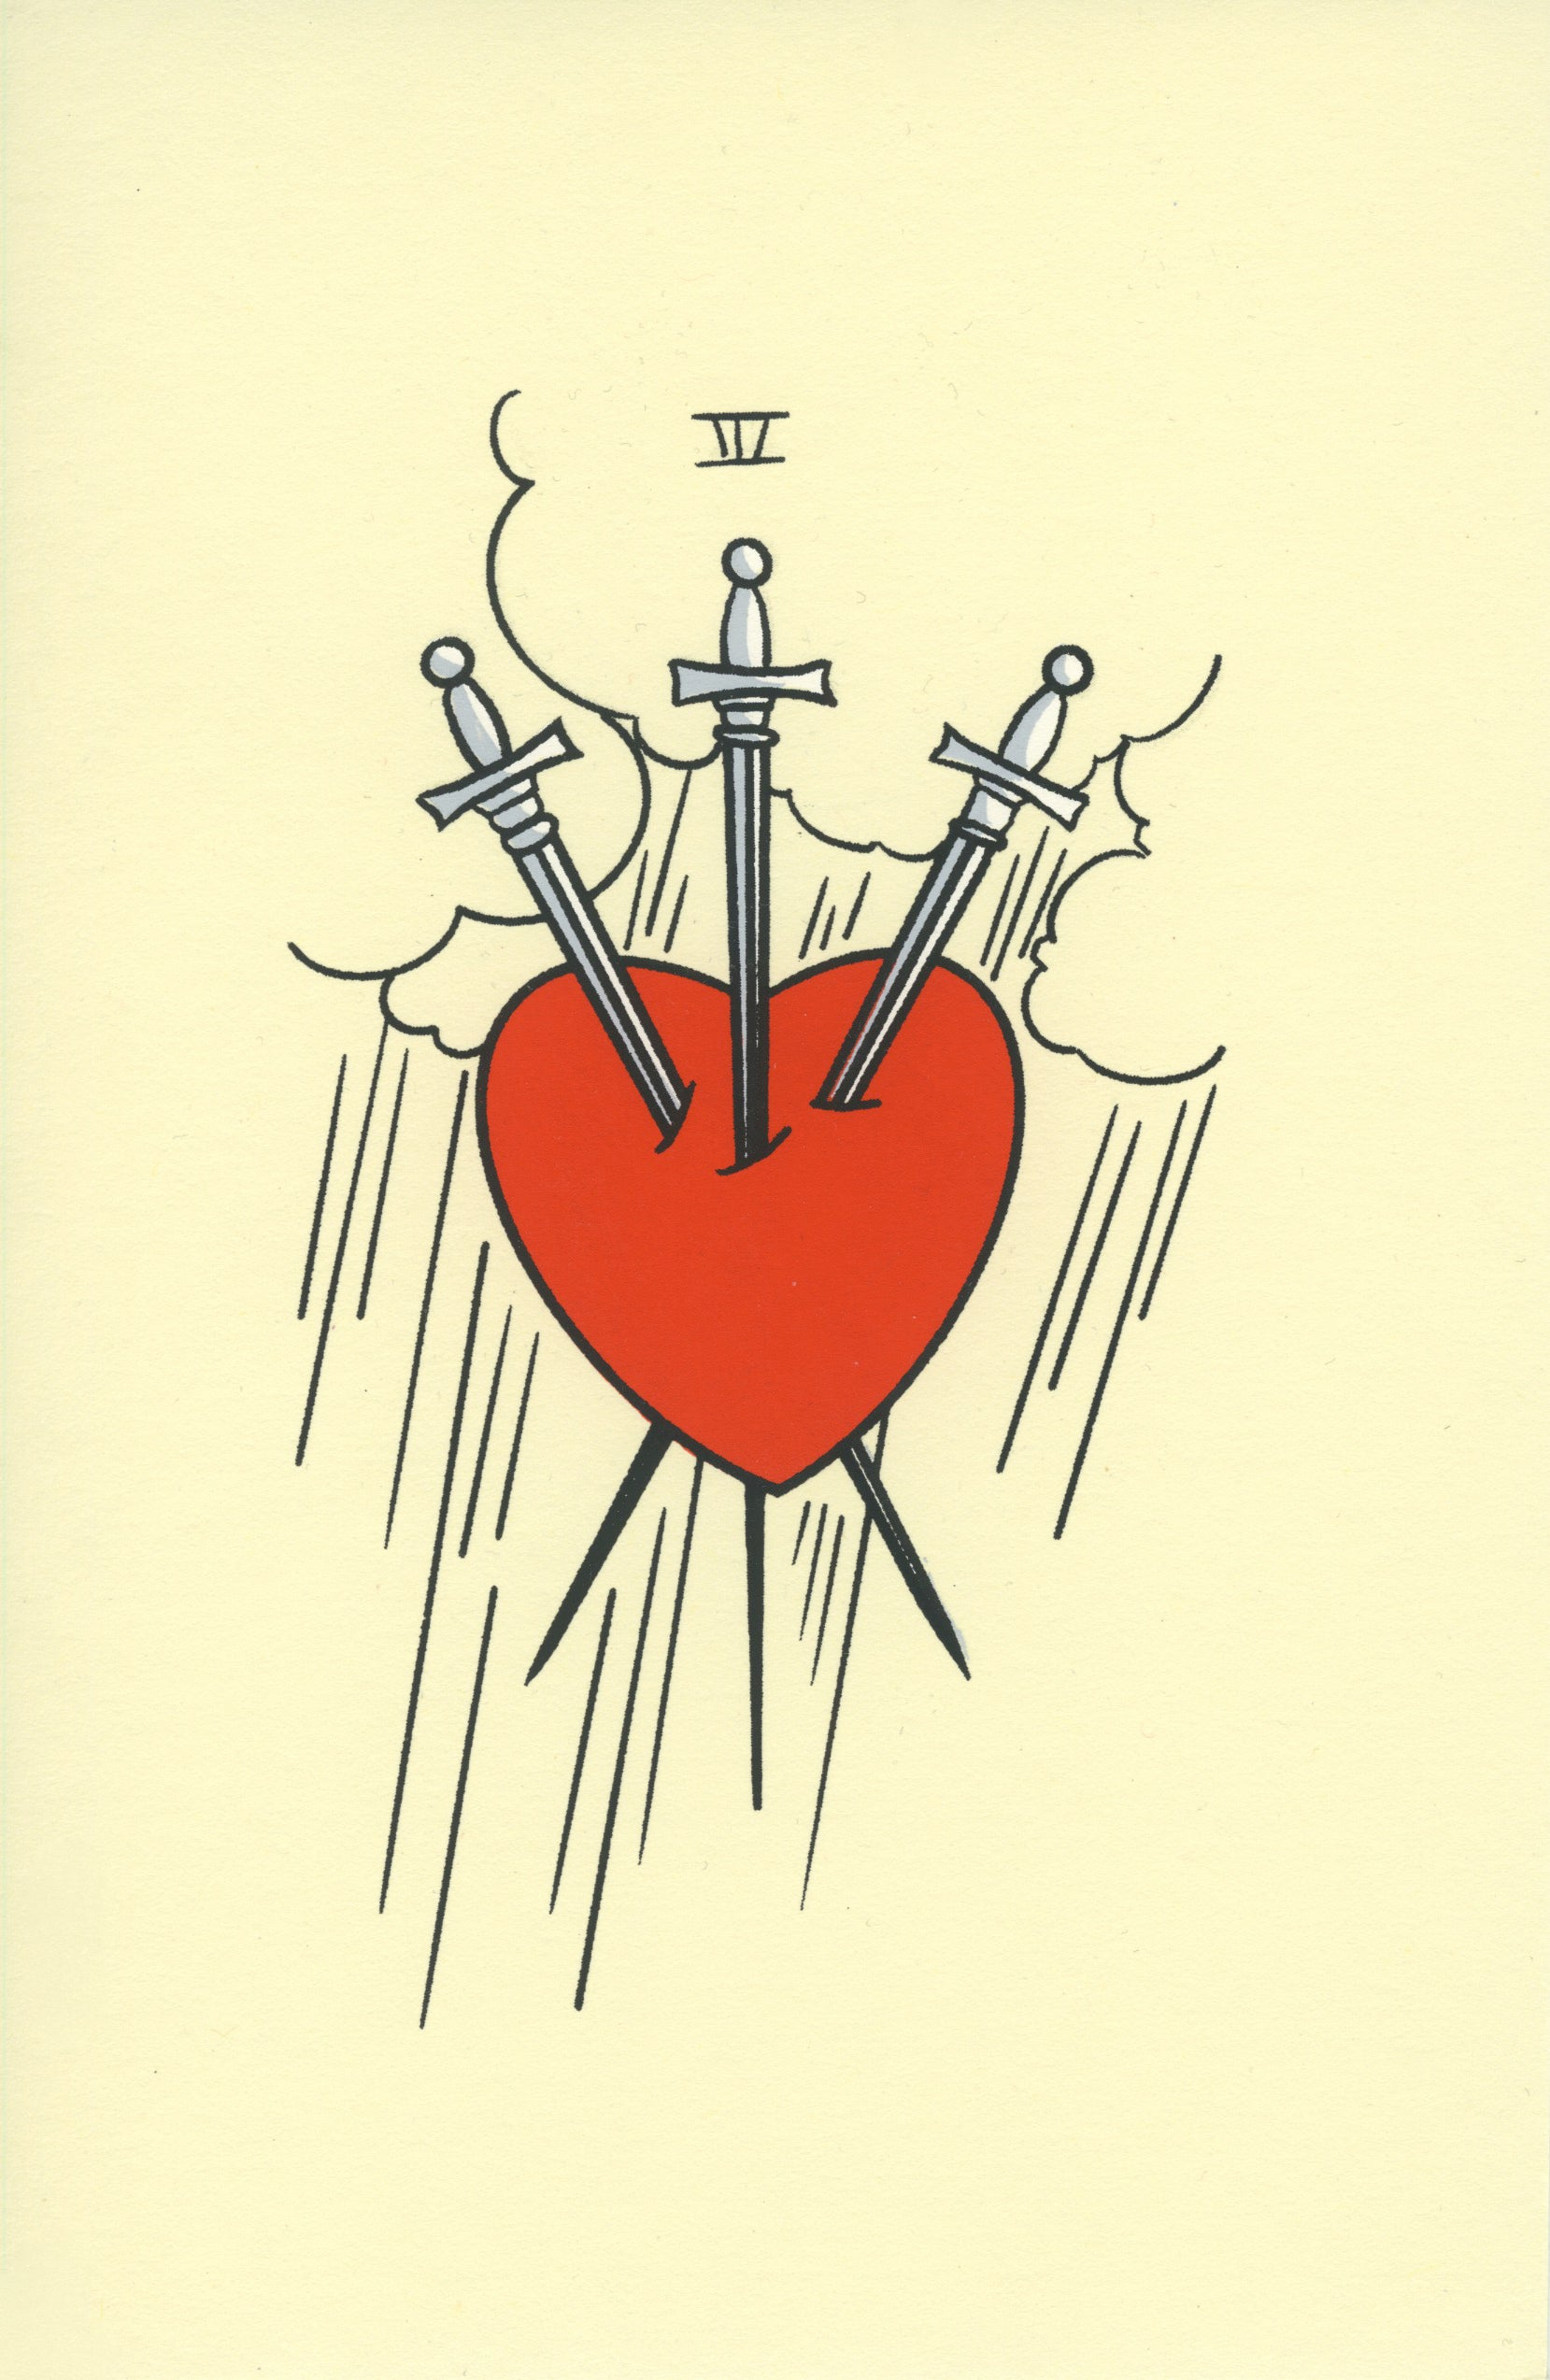 A cream colored piece of paper with a line drawing of a red heart being pierced by three swords.